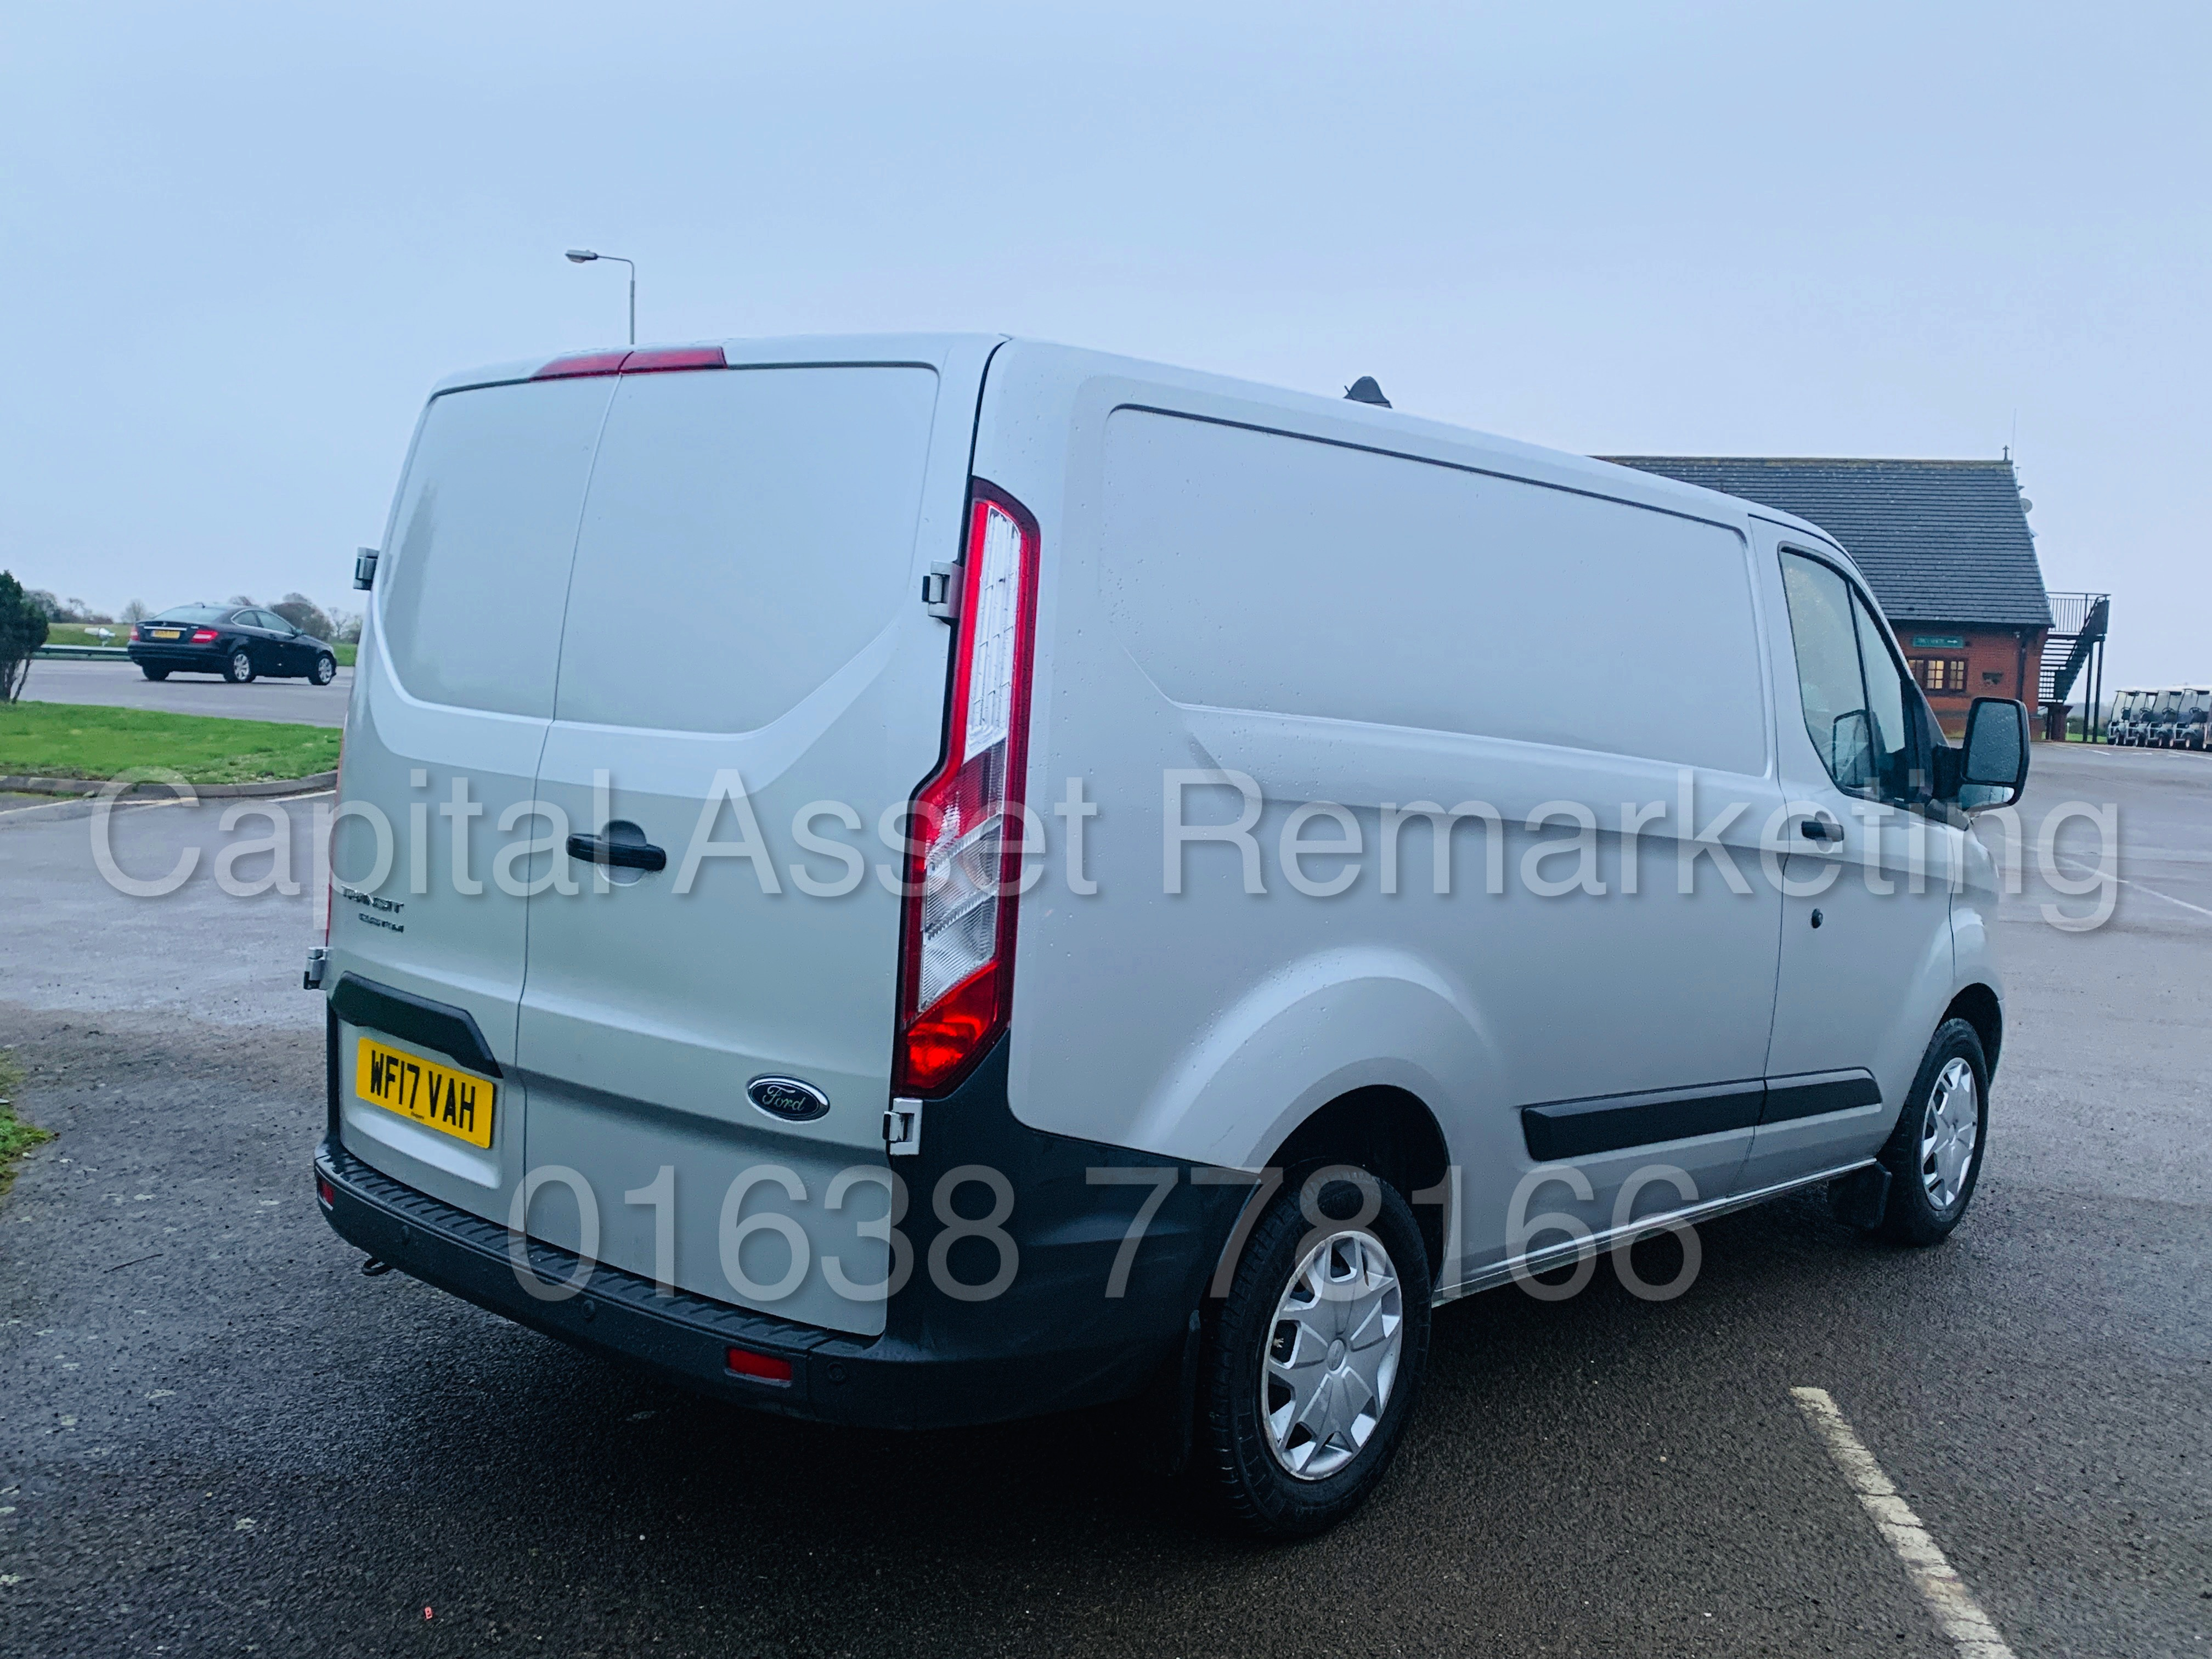 (On Sale) FORD TRANSIT *TREND* 290 SWB (2017 - EURO 6 / AD-BLUE) '2.0 TDCI - 130 BHP - 6 SPEED' - Image 11 of 41